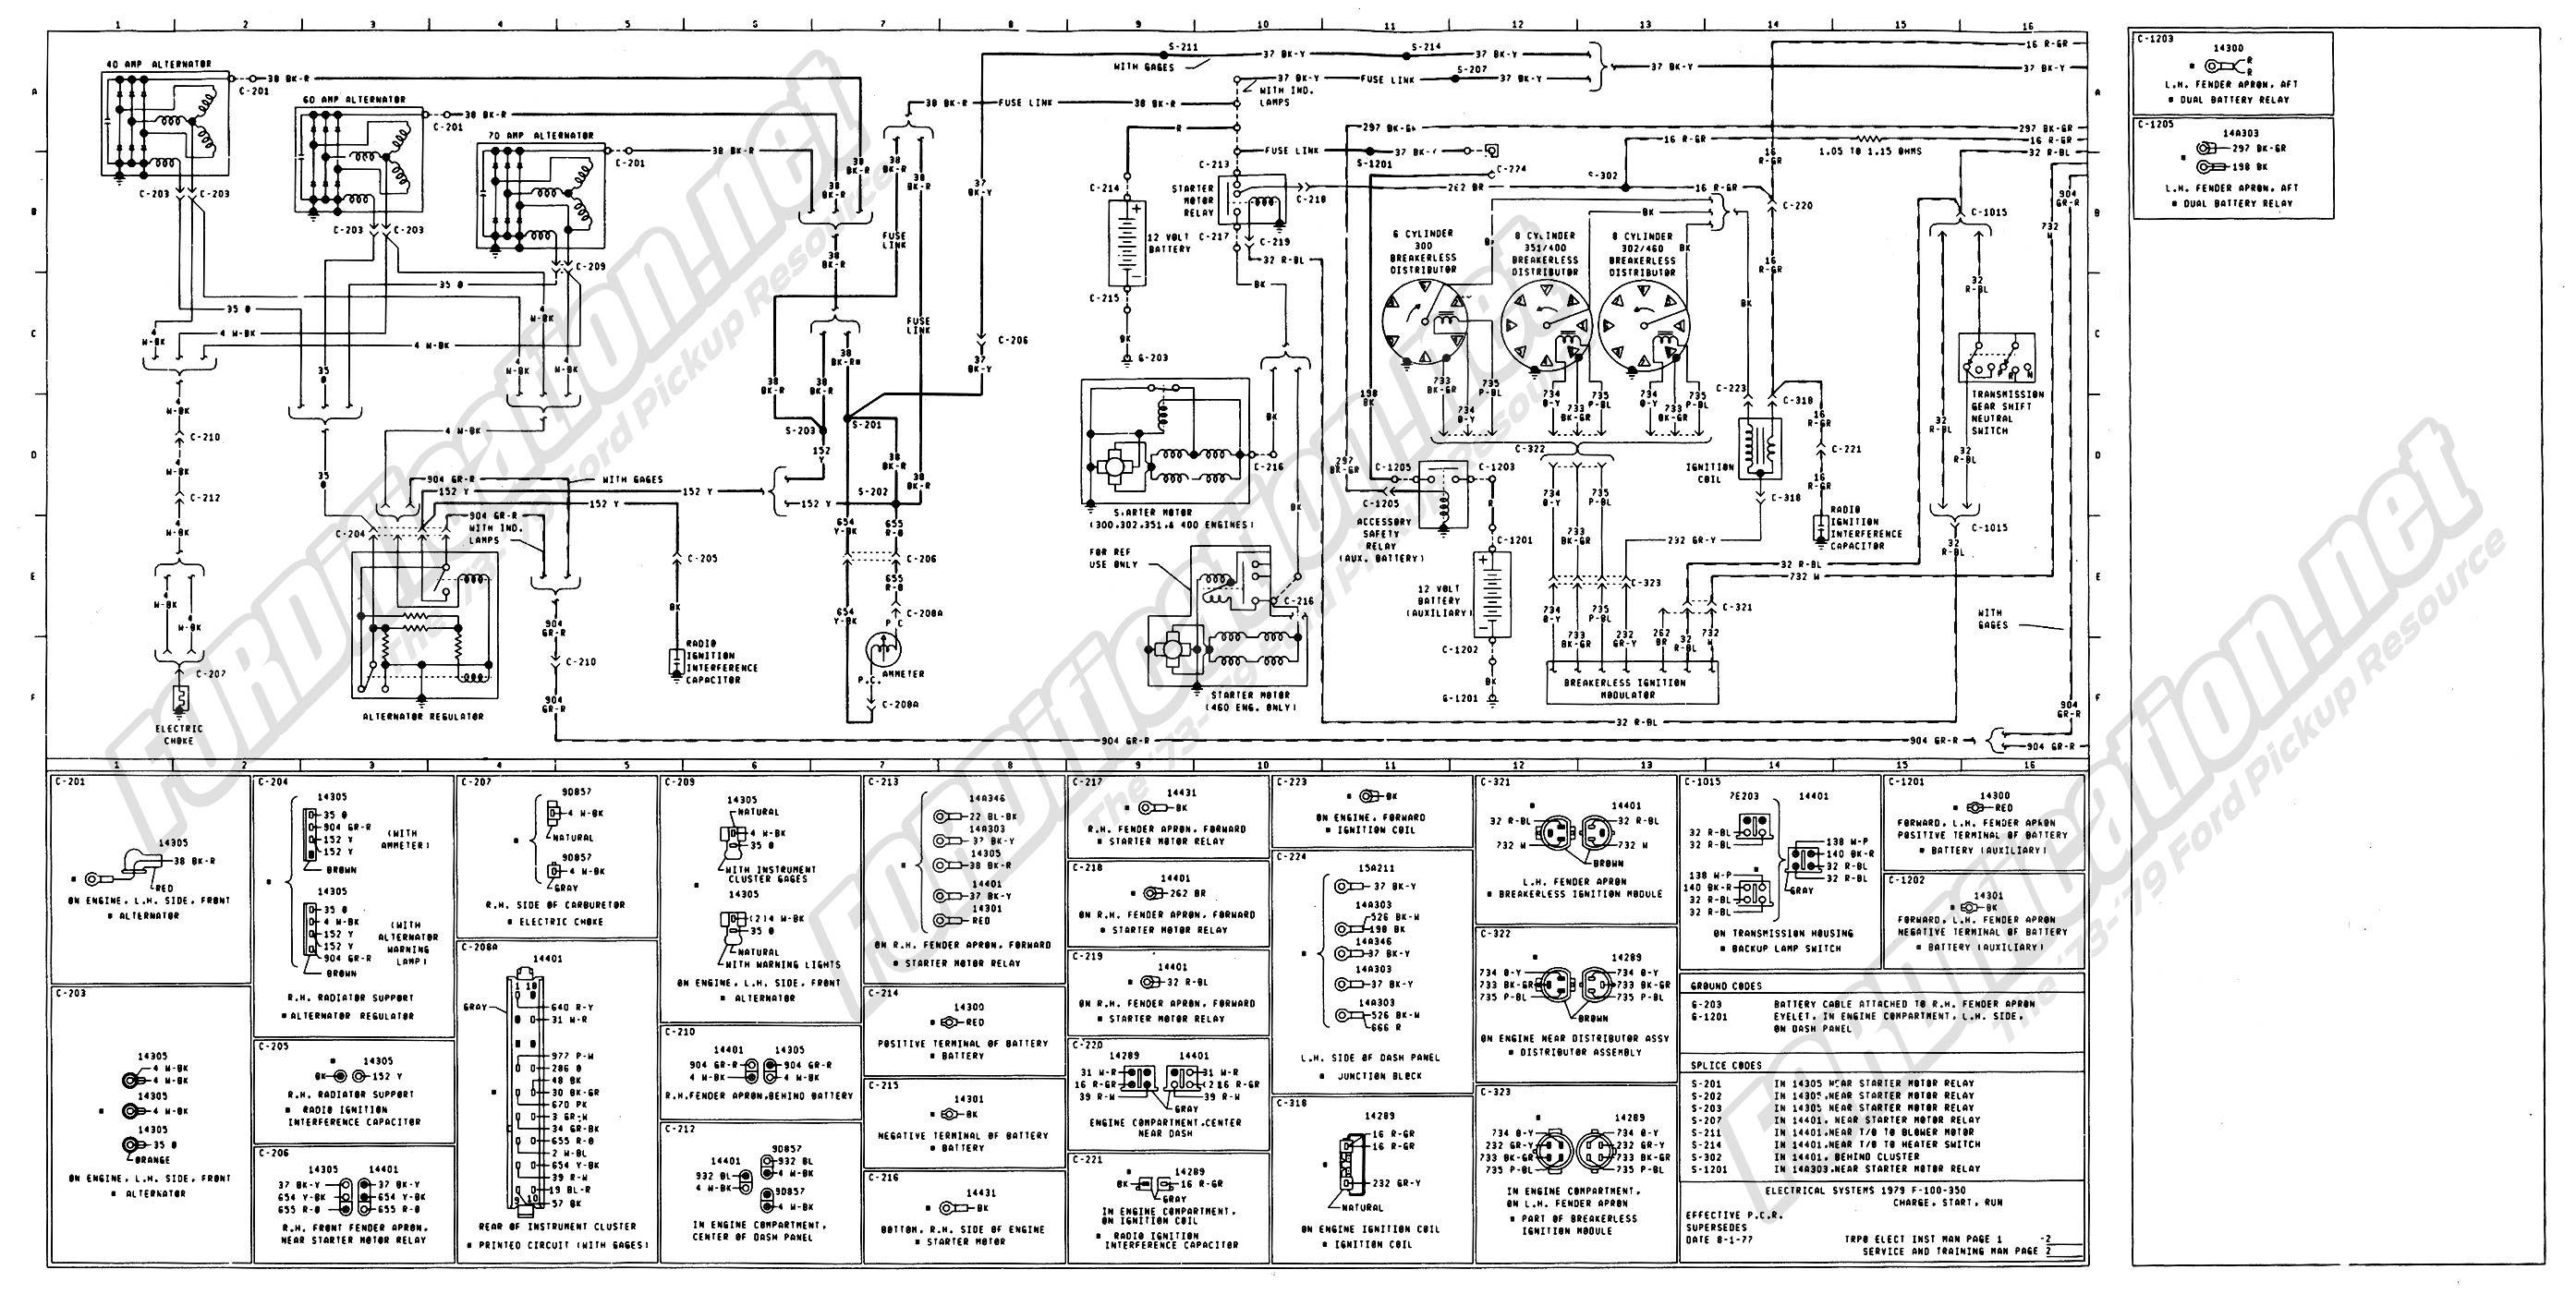 1973 1979 ford truck wiring diagrams schematics fordification net rh fordification net 1999 Ford F-150 Parts Diagram 1999 Ford Fuse Panel Diagram